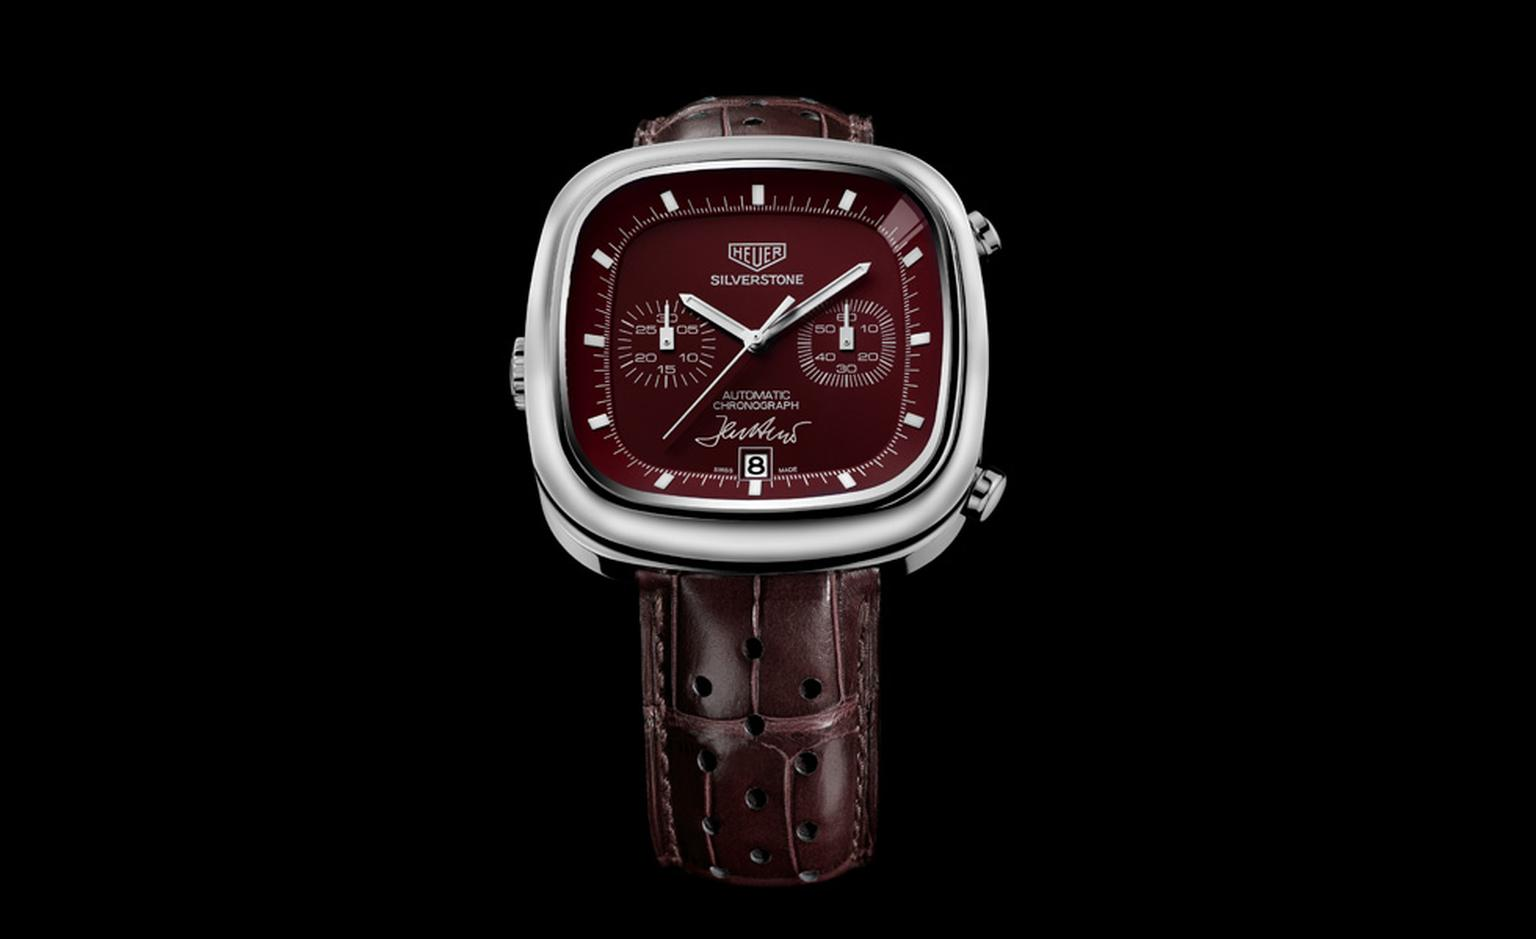 TAG Heuer Jack Heuer Silverstone Calibre 11 with a red dial made for the auction sold for £10,000